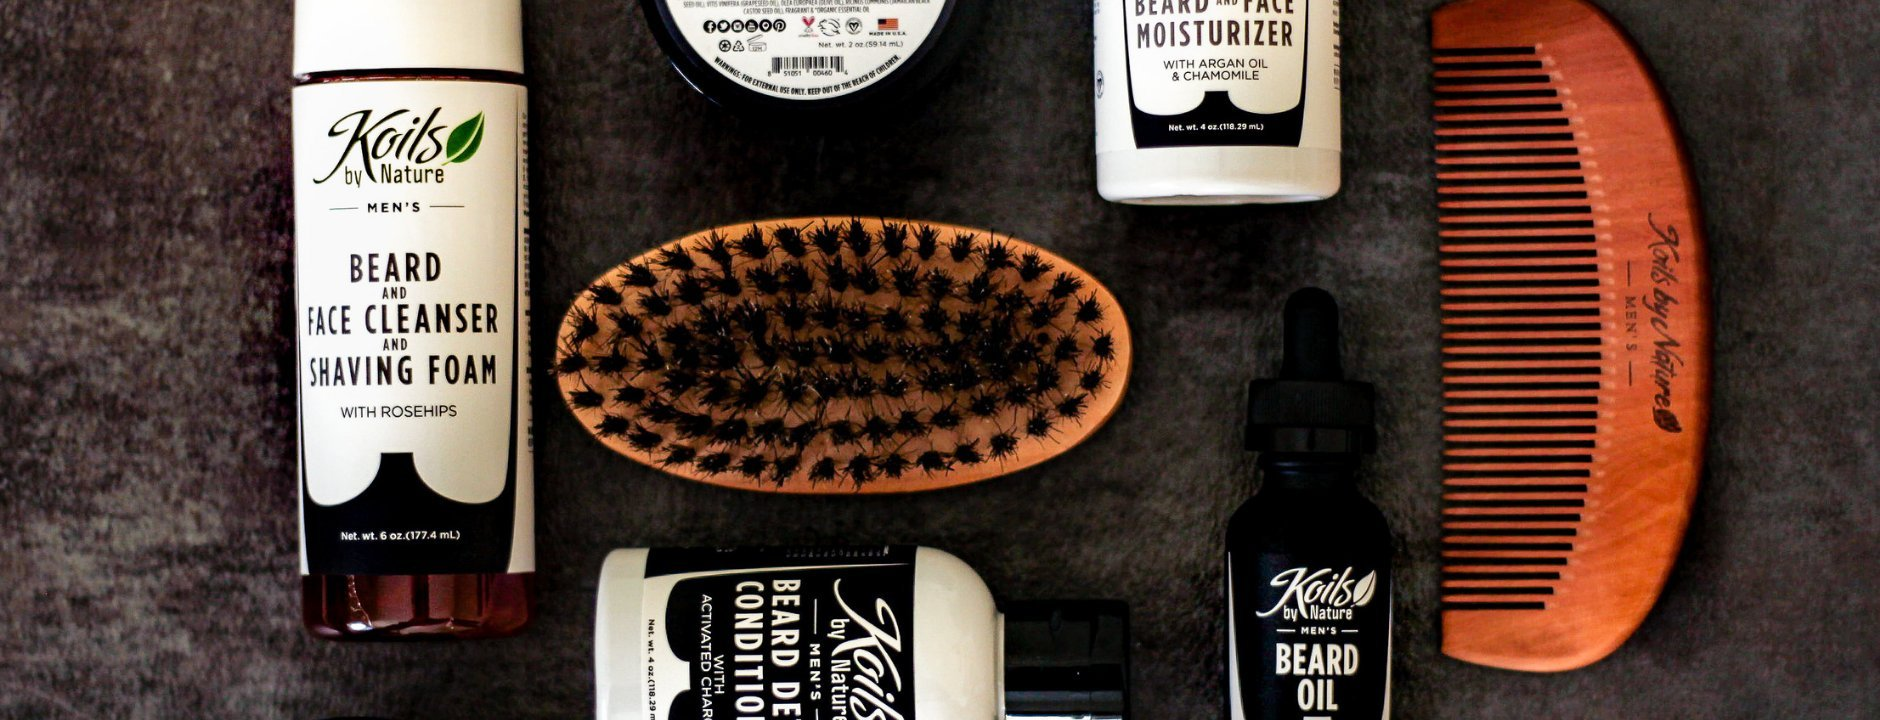 Koils by Nature Moisturizing Leave In Conditioner